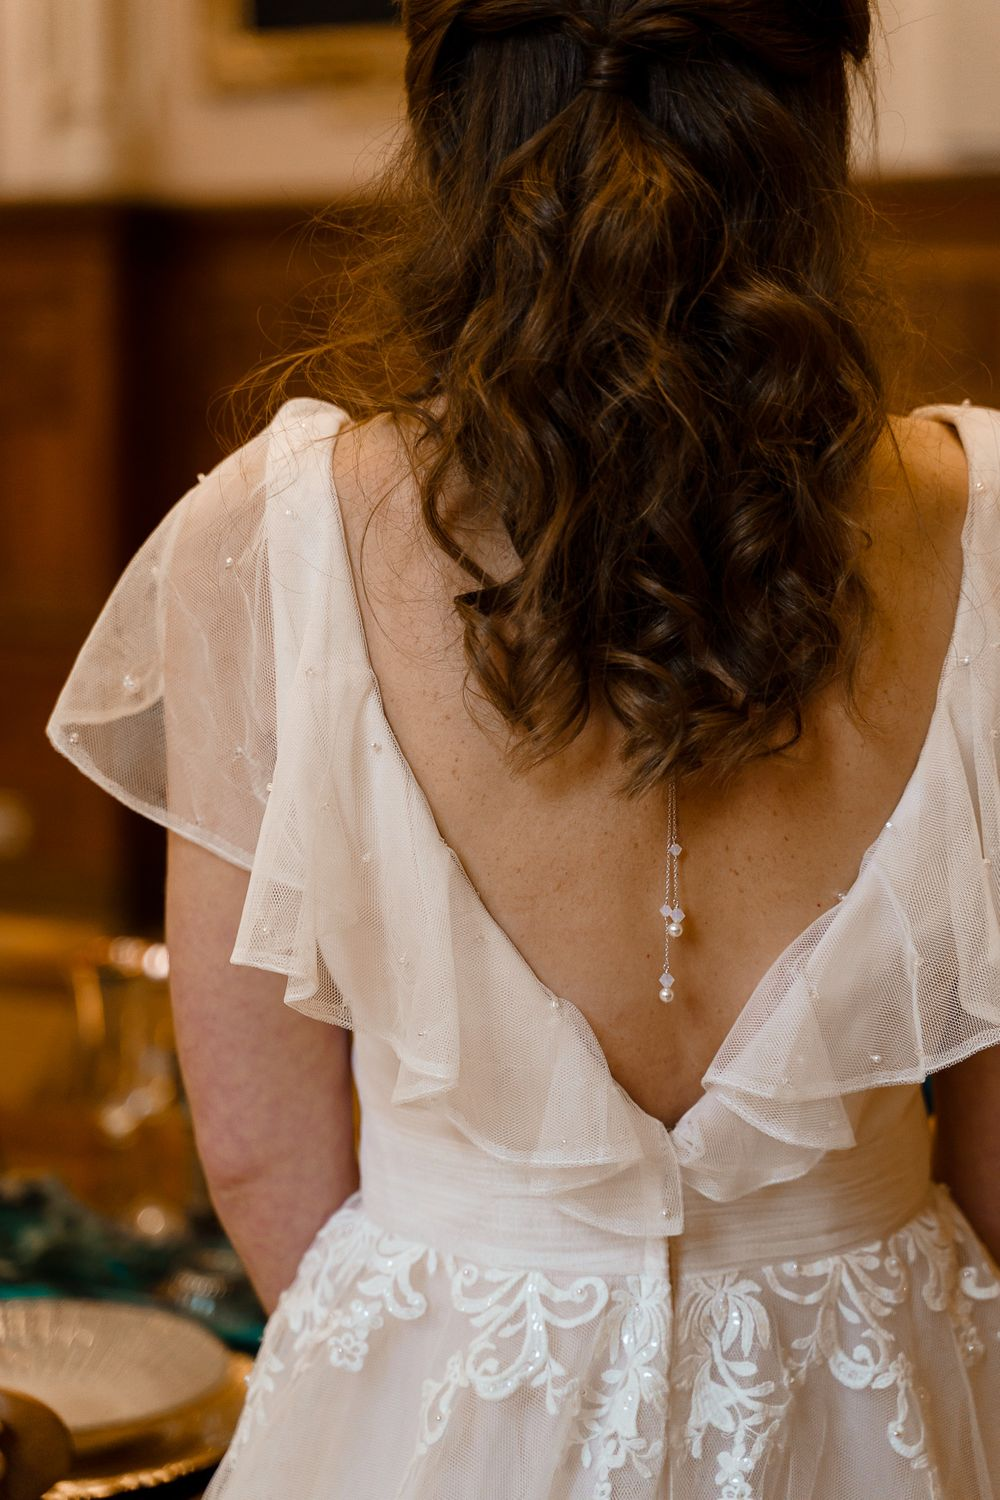 Back drop necklace on a bride in a white dress - Hampshire wedding photographer.